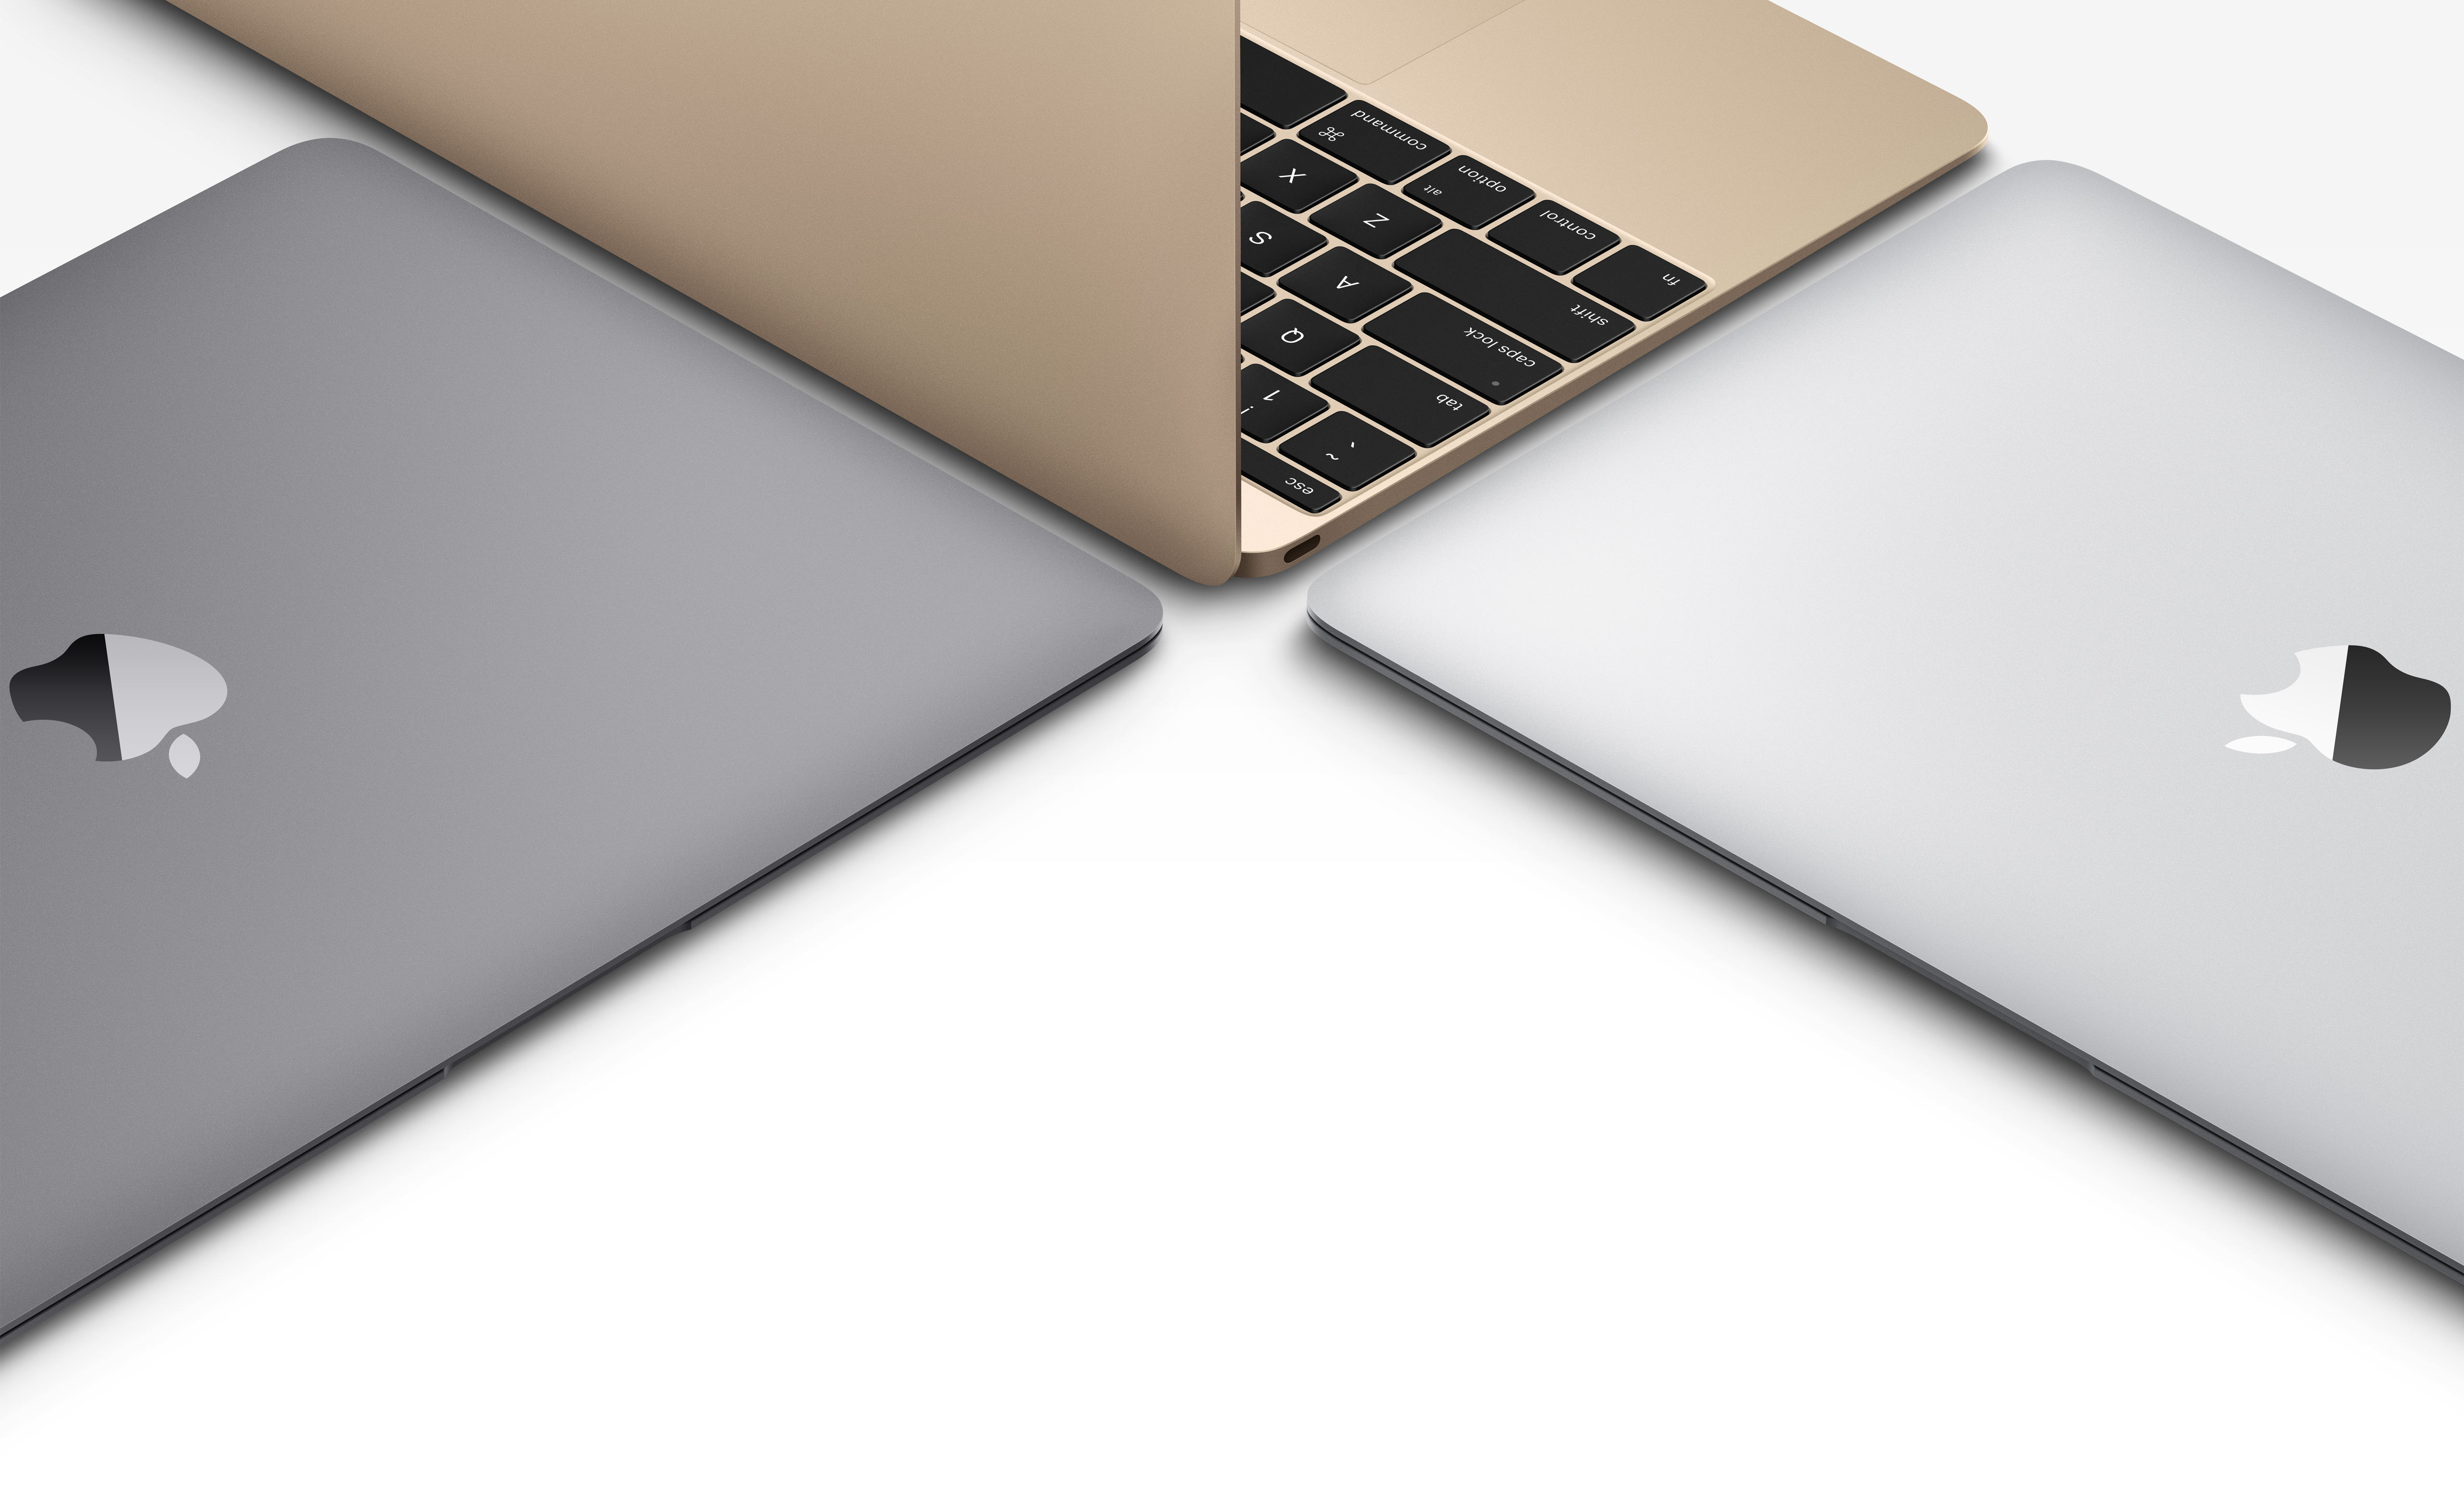 new MacBook silver gold space gray